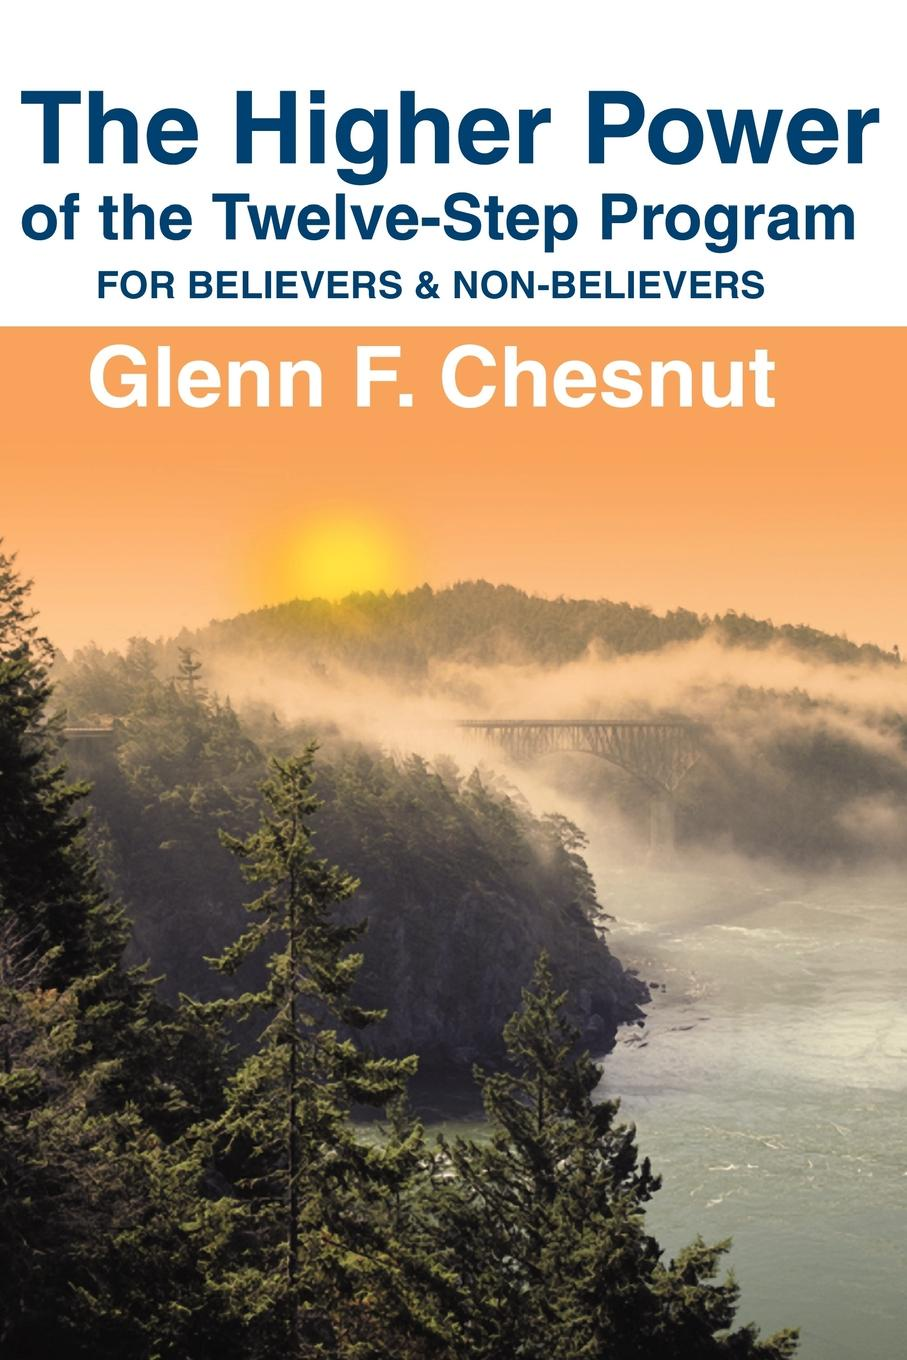 Glenn F. Chesnut The Higher Power of the Twelve-Step Program. For Believers & Non-Believers robert brands f robert s rules of innovation a 10 step program for corporate survival